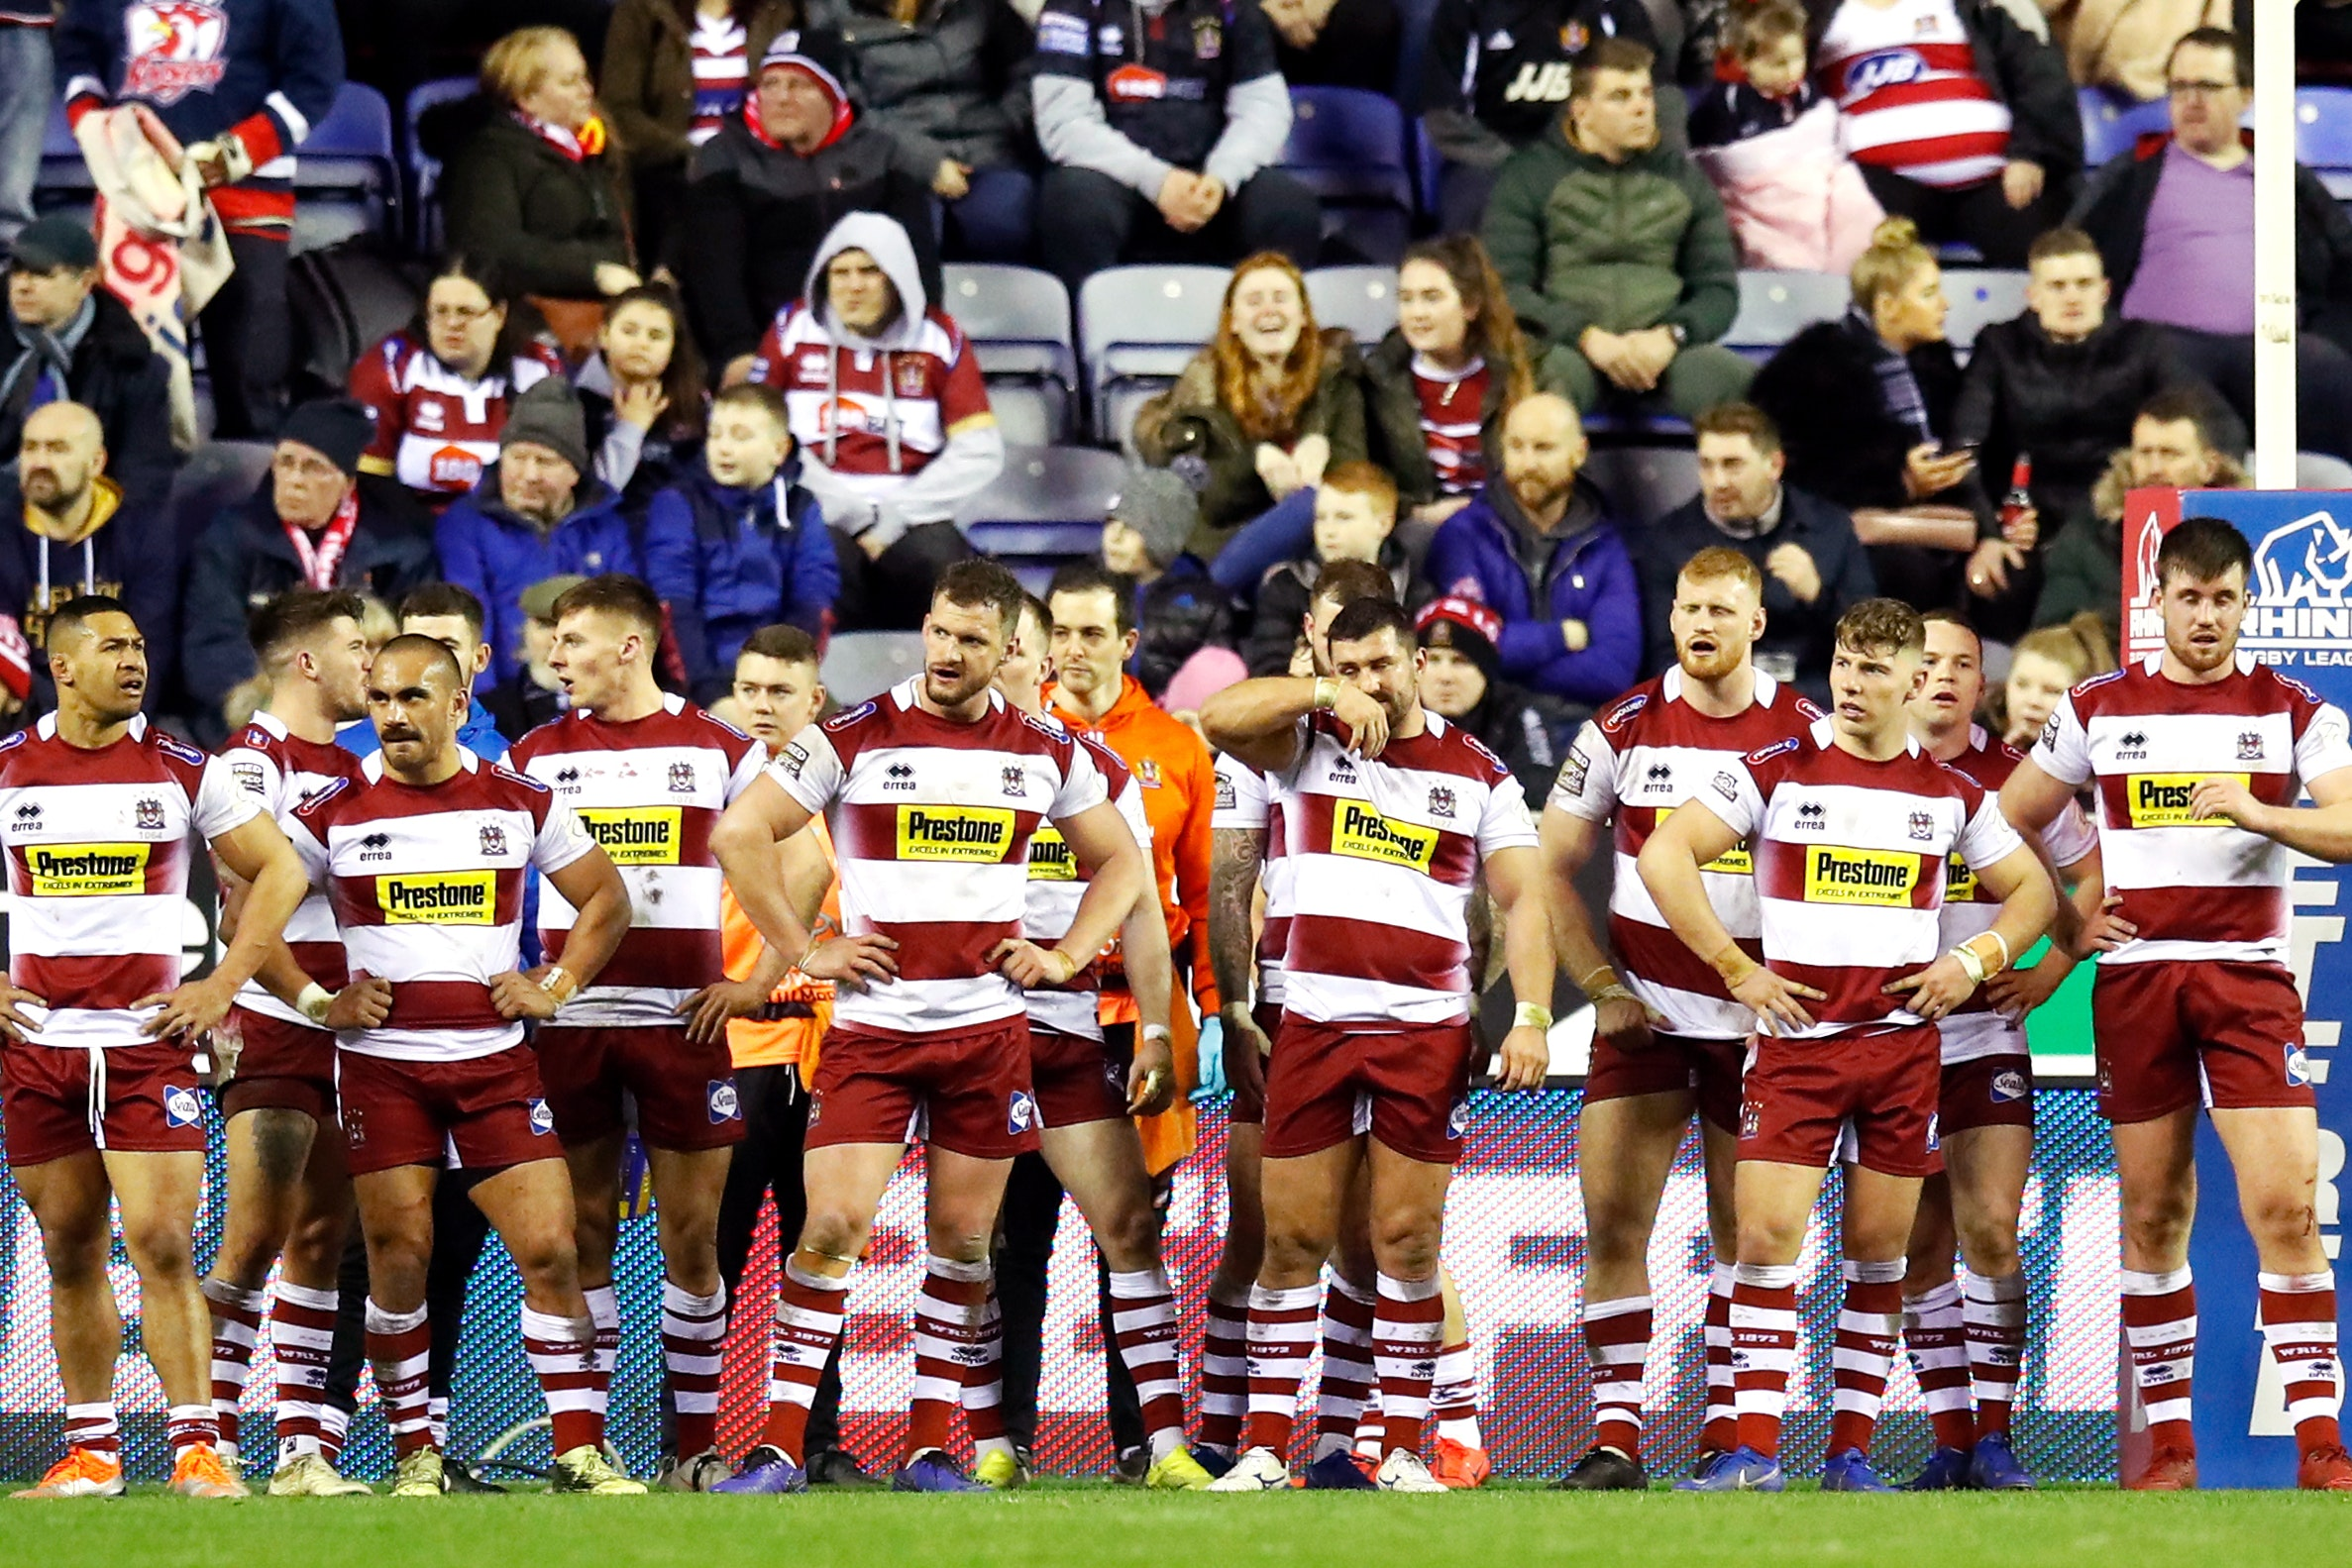 Wigan were well beaten at home